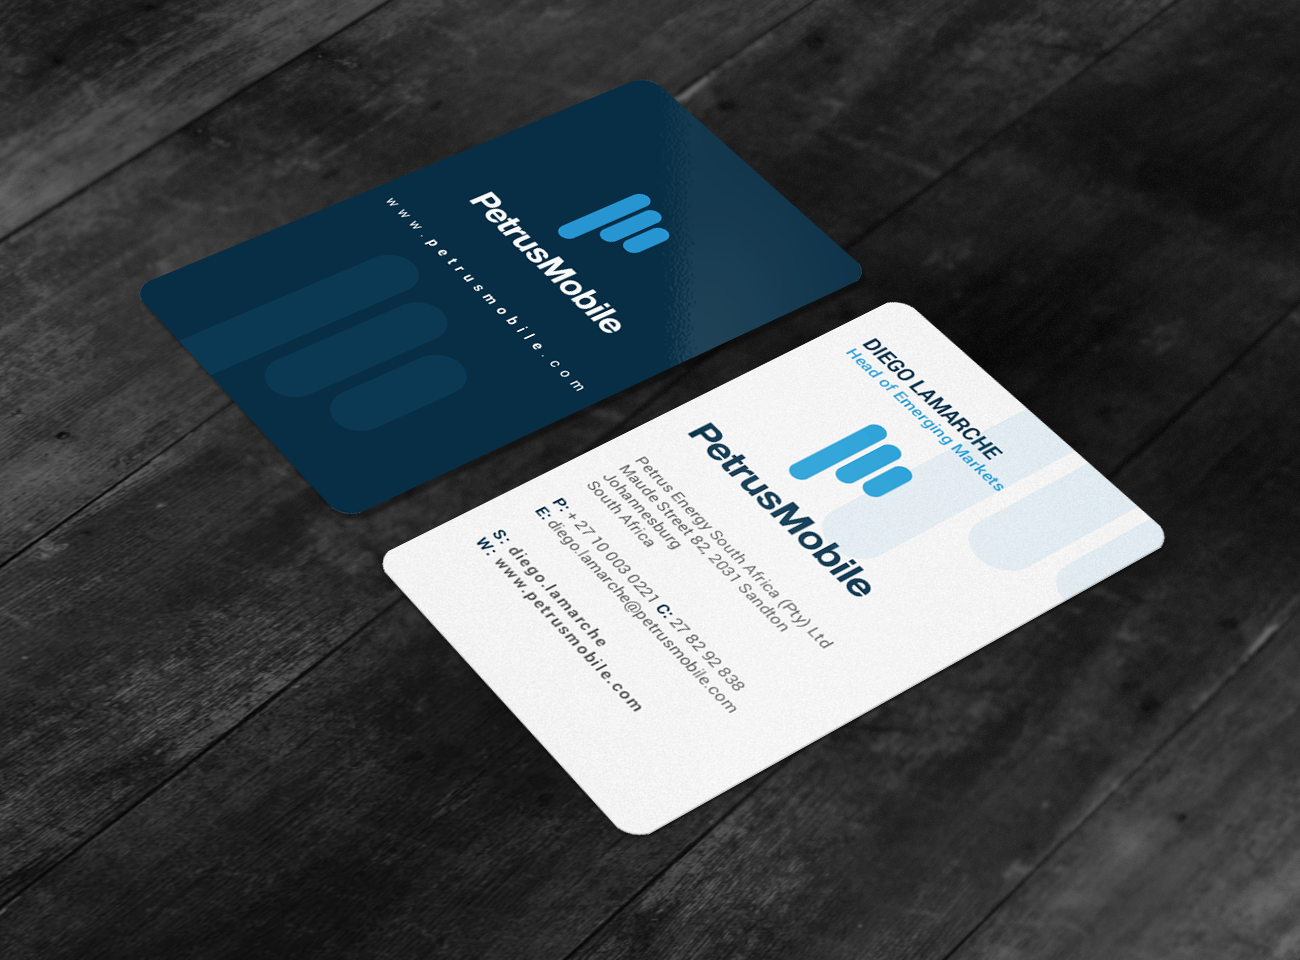 Elegant, Serious, Wireless Communication Business Card Design for ...